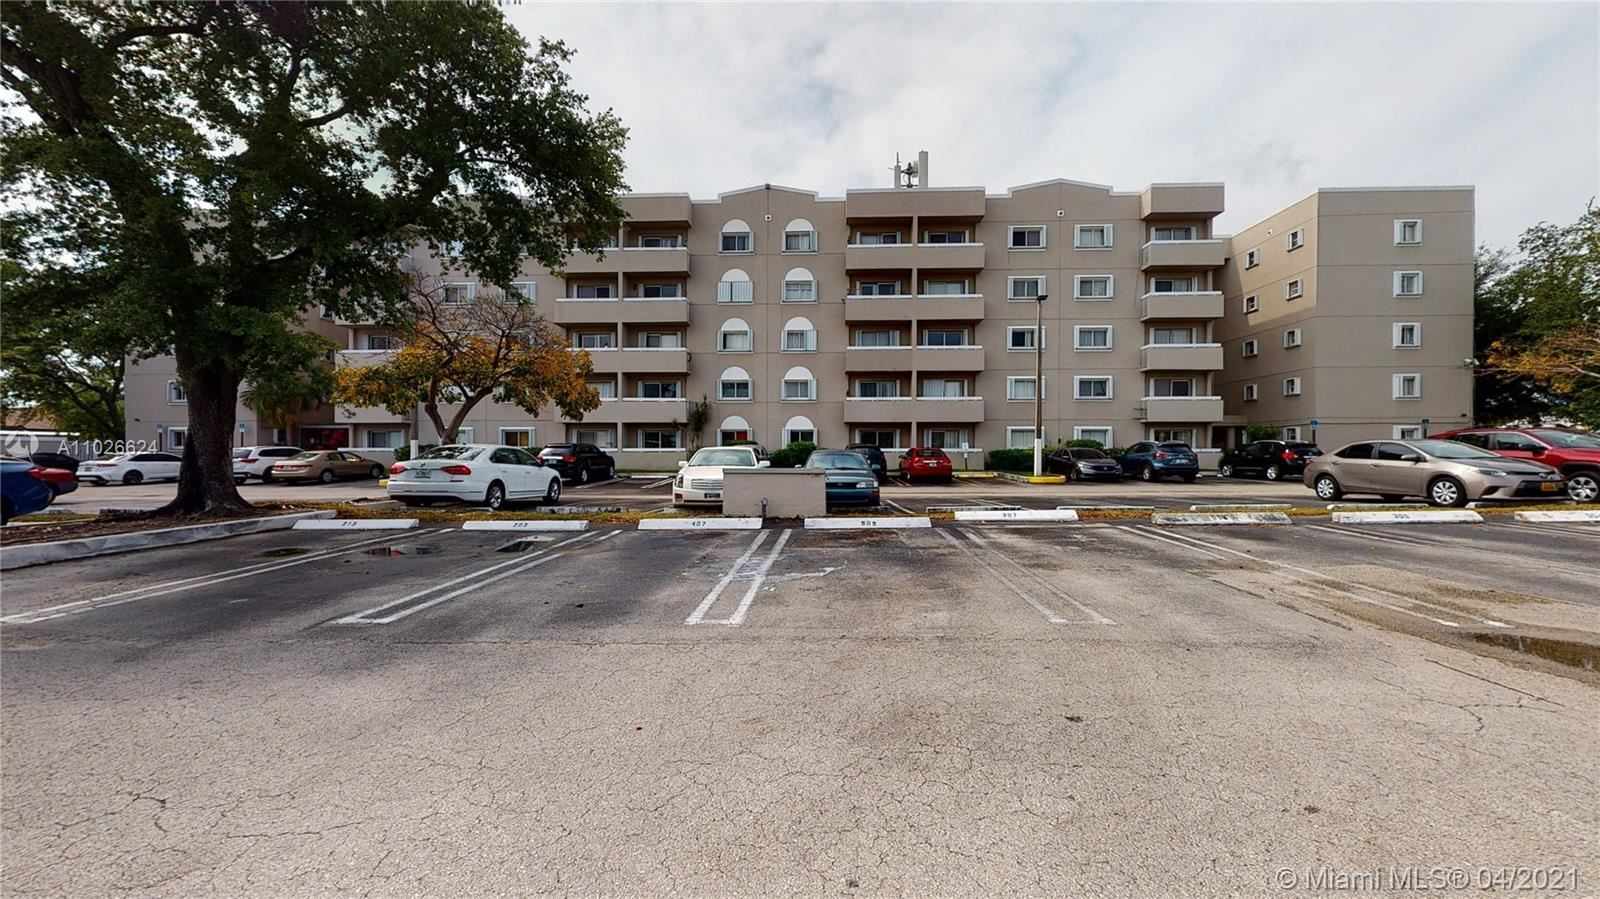 600 NW 32nd Pl #503, Miami, FL 33125 - #: A11026624